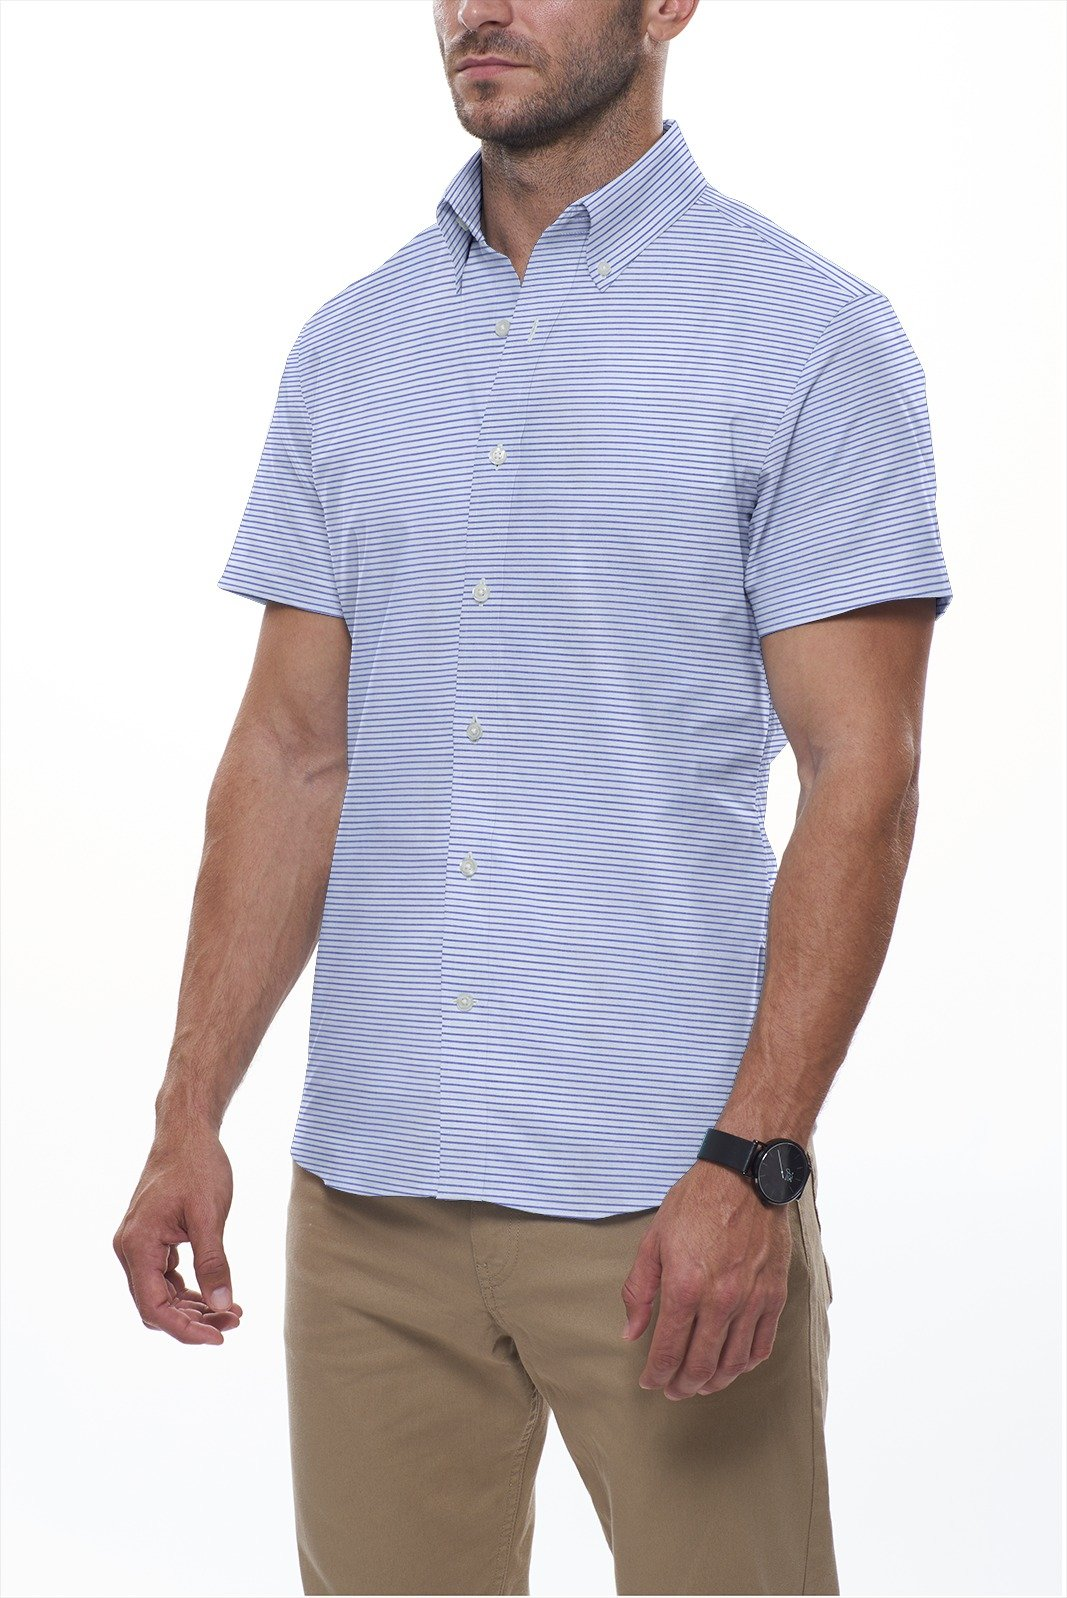 Cool Blue Horizontal Linen Stripe: Button-Down Collar, Short Sleeve